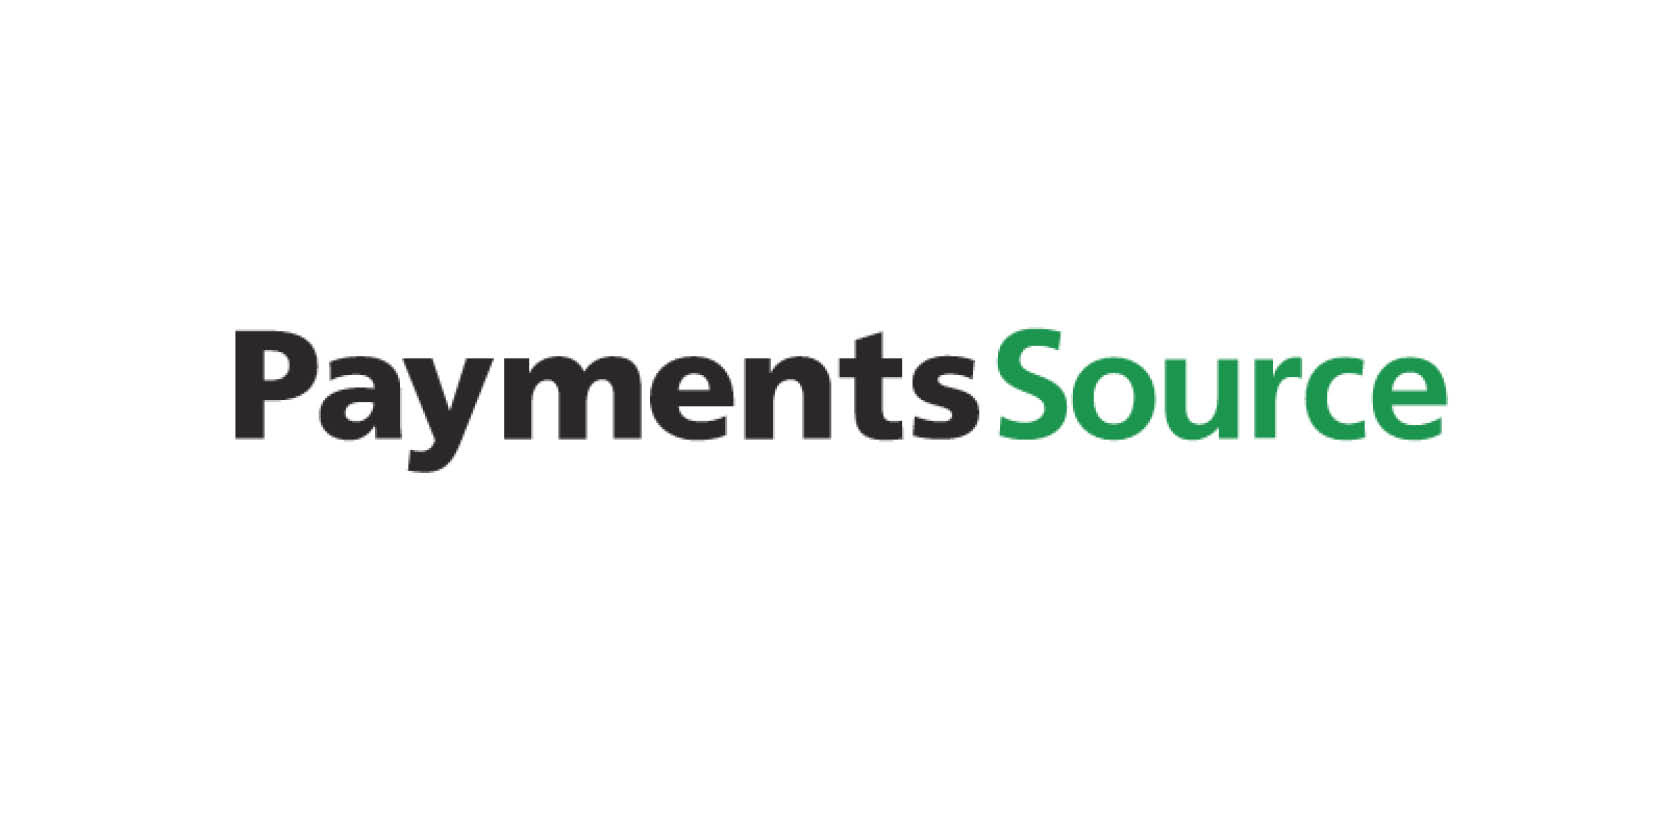 Payments Source: 11.17.16: Your morning briefing